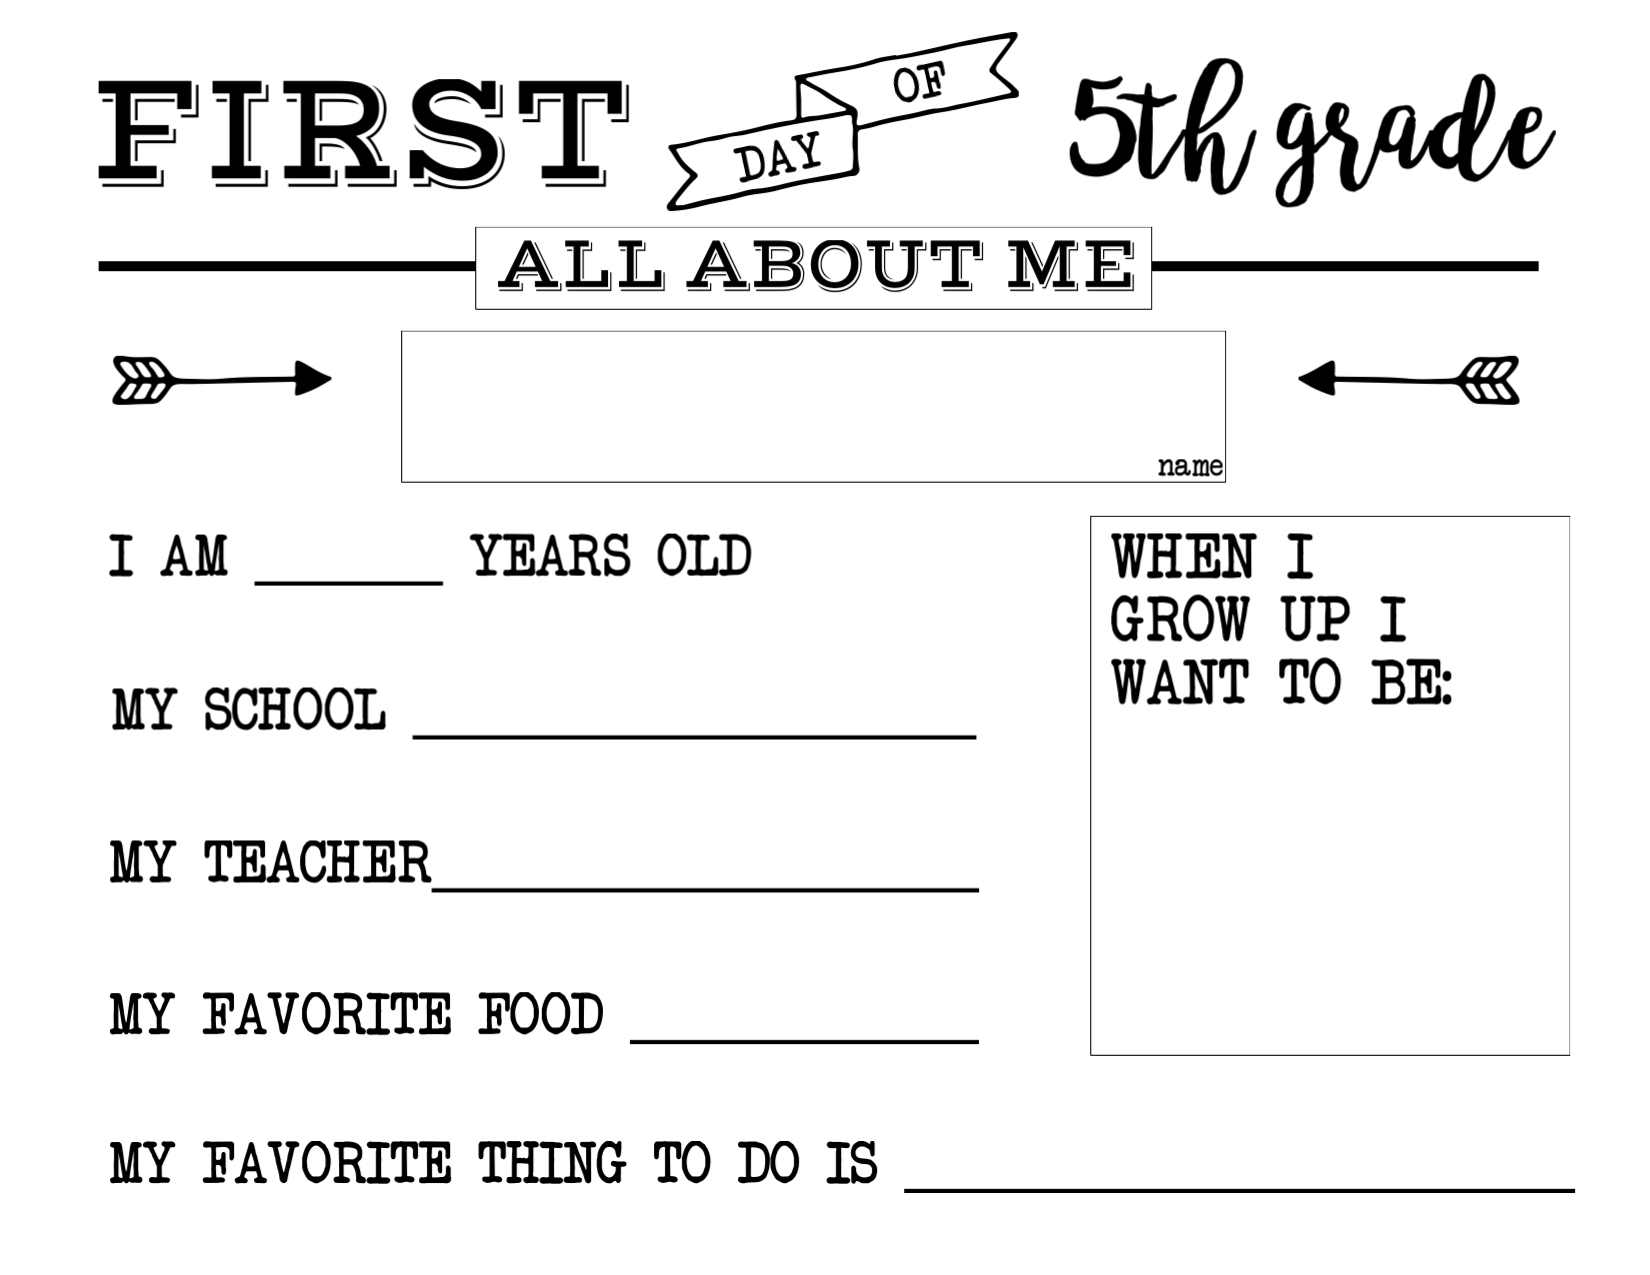 School Worksheets 5th Grade : First day of school all about me sign paper trail design